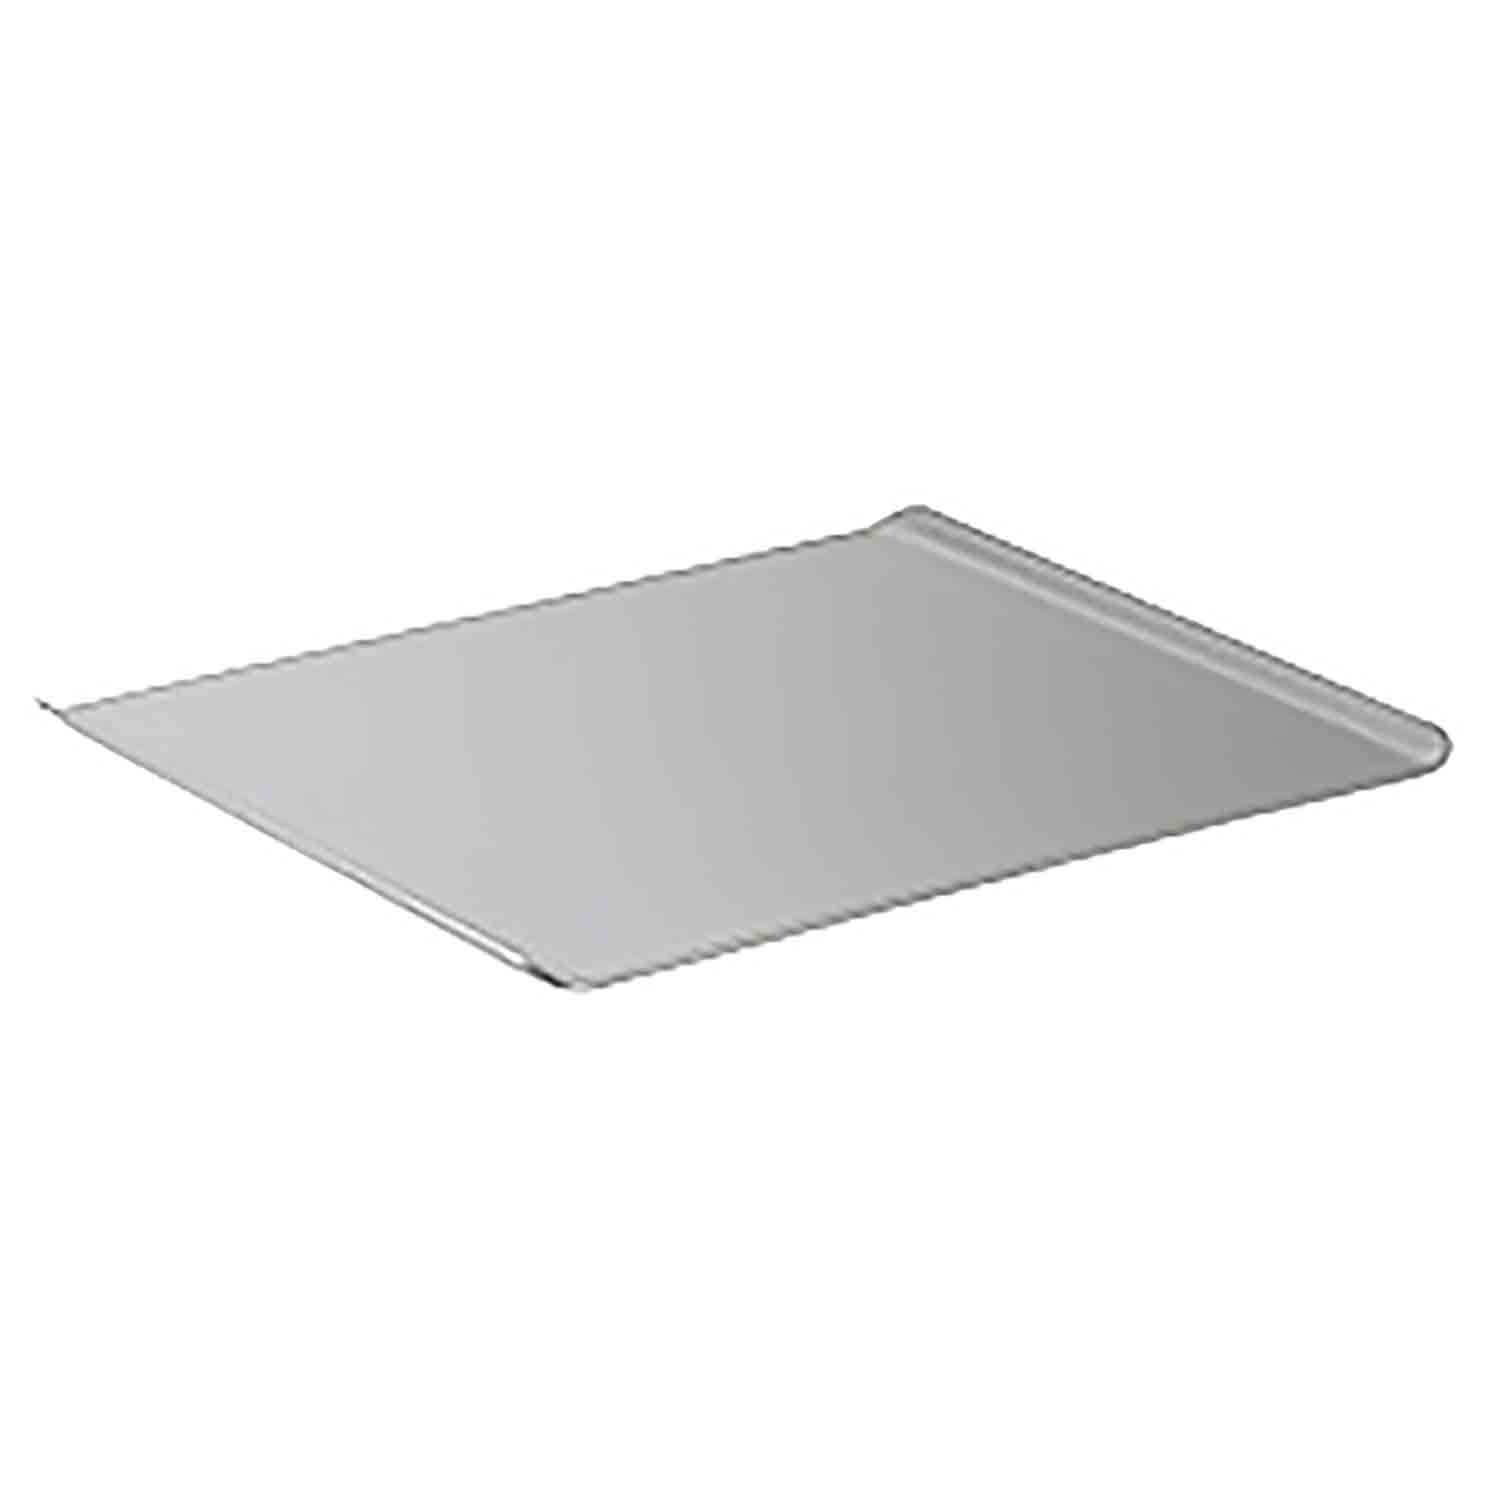 Toaster Oven Tray Fr 4604 Country Kitchen Sweetart